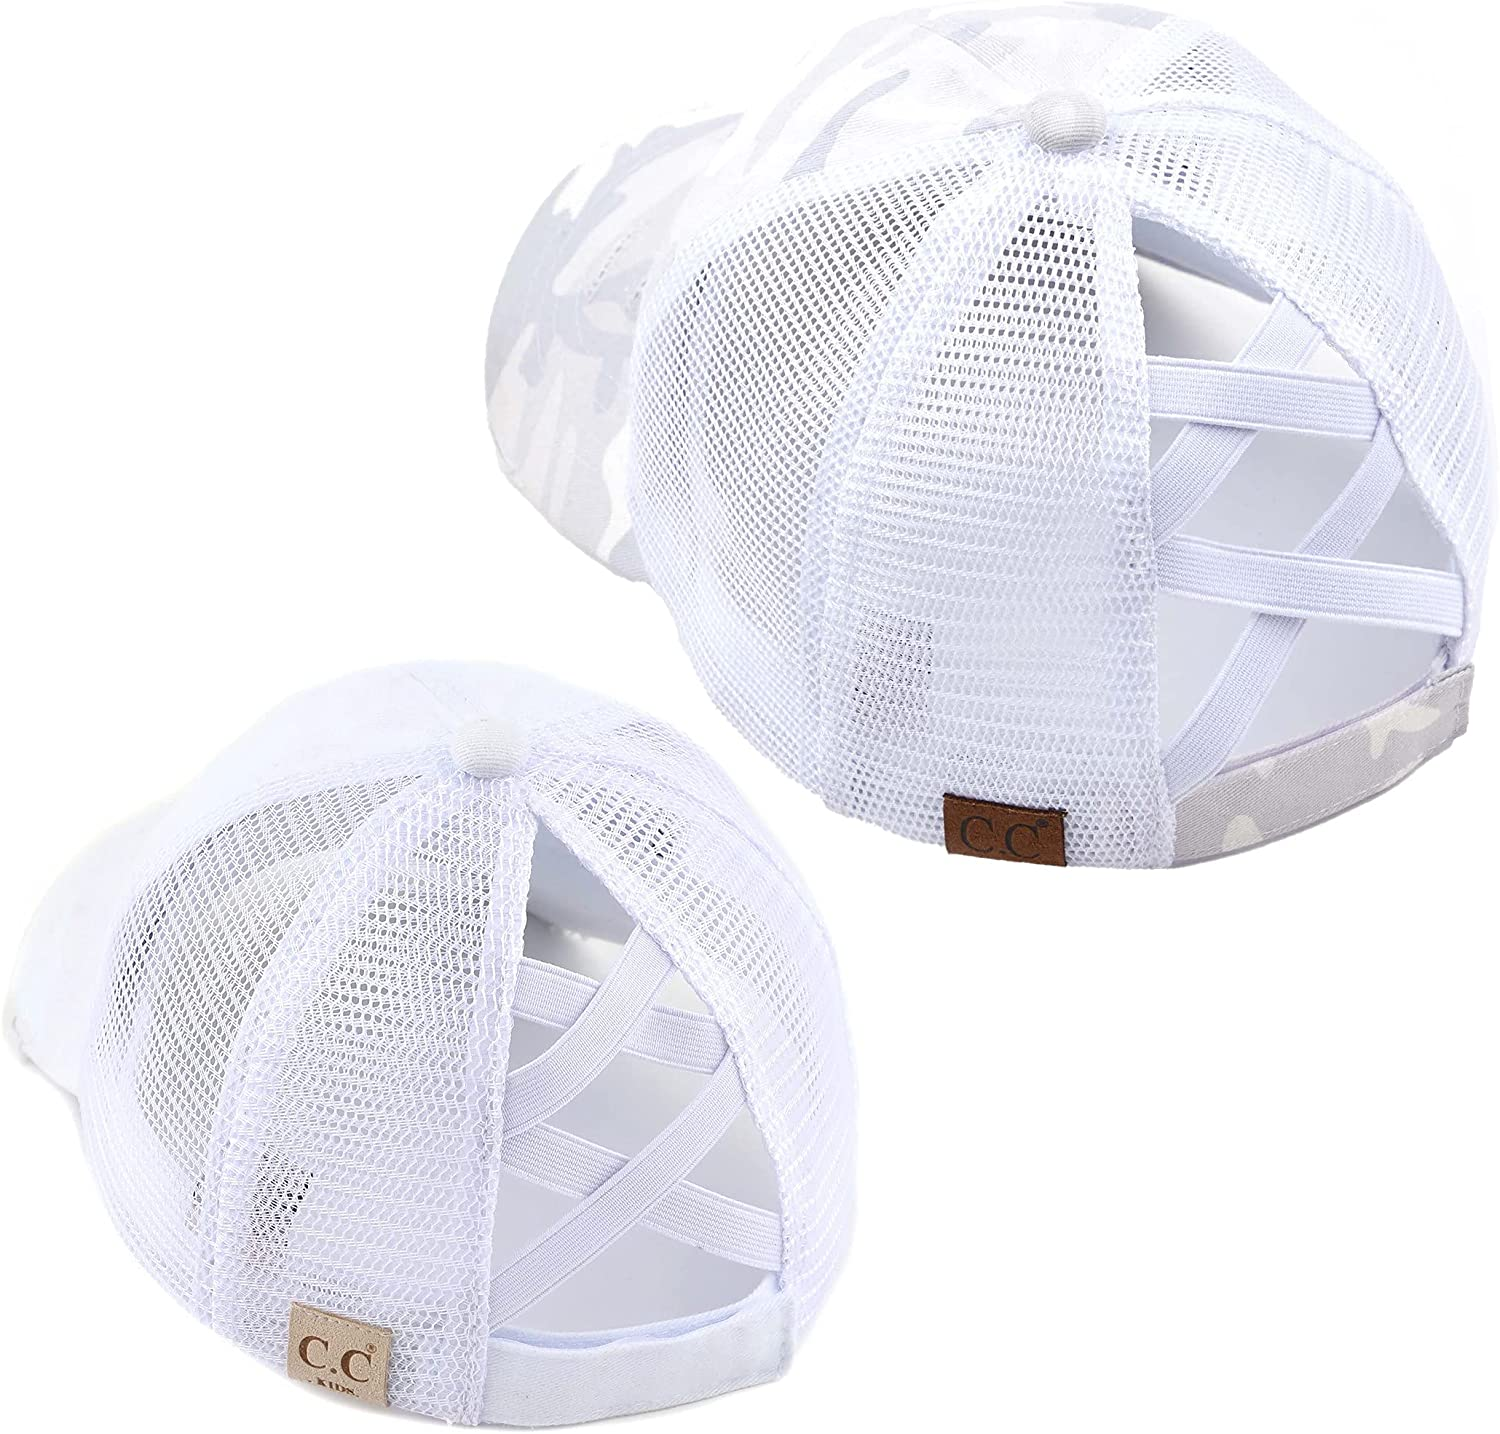 Mommy Long-awaited and me Criss Cross Hat Bundle: White Camo Limited price 2 Pack